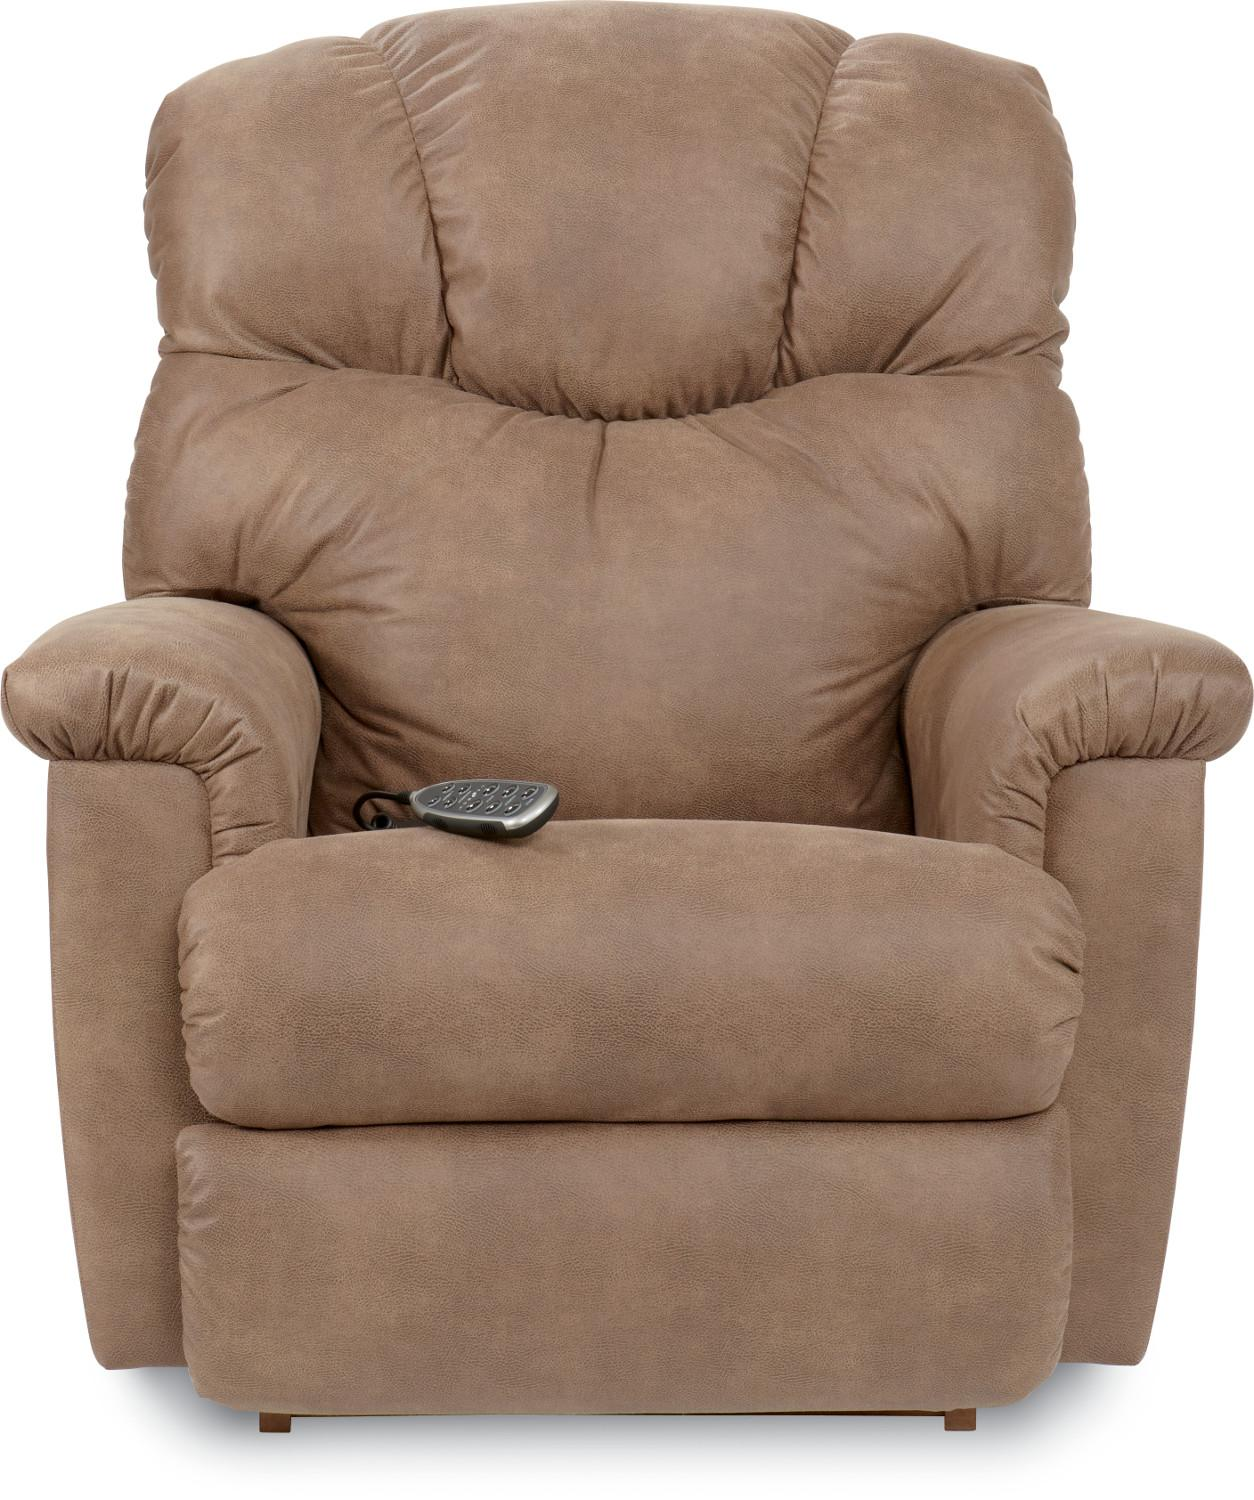 Lancer Power Rocking Recliner w/ Headrest by La-Z-Boy at Bennett's Furniture and Mattresses